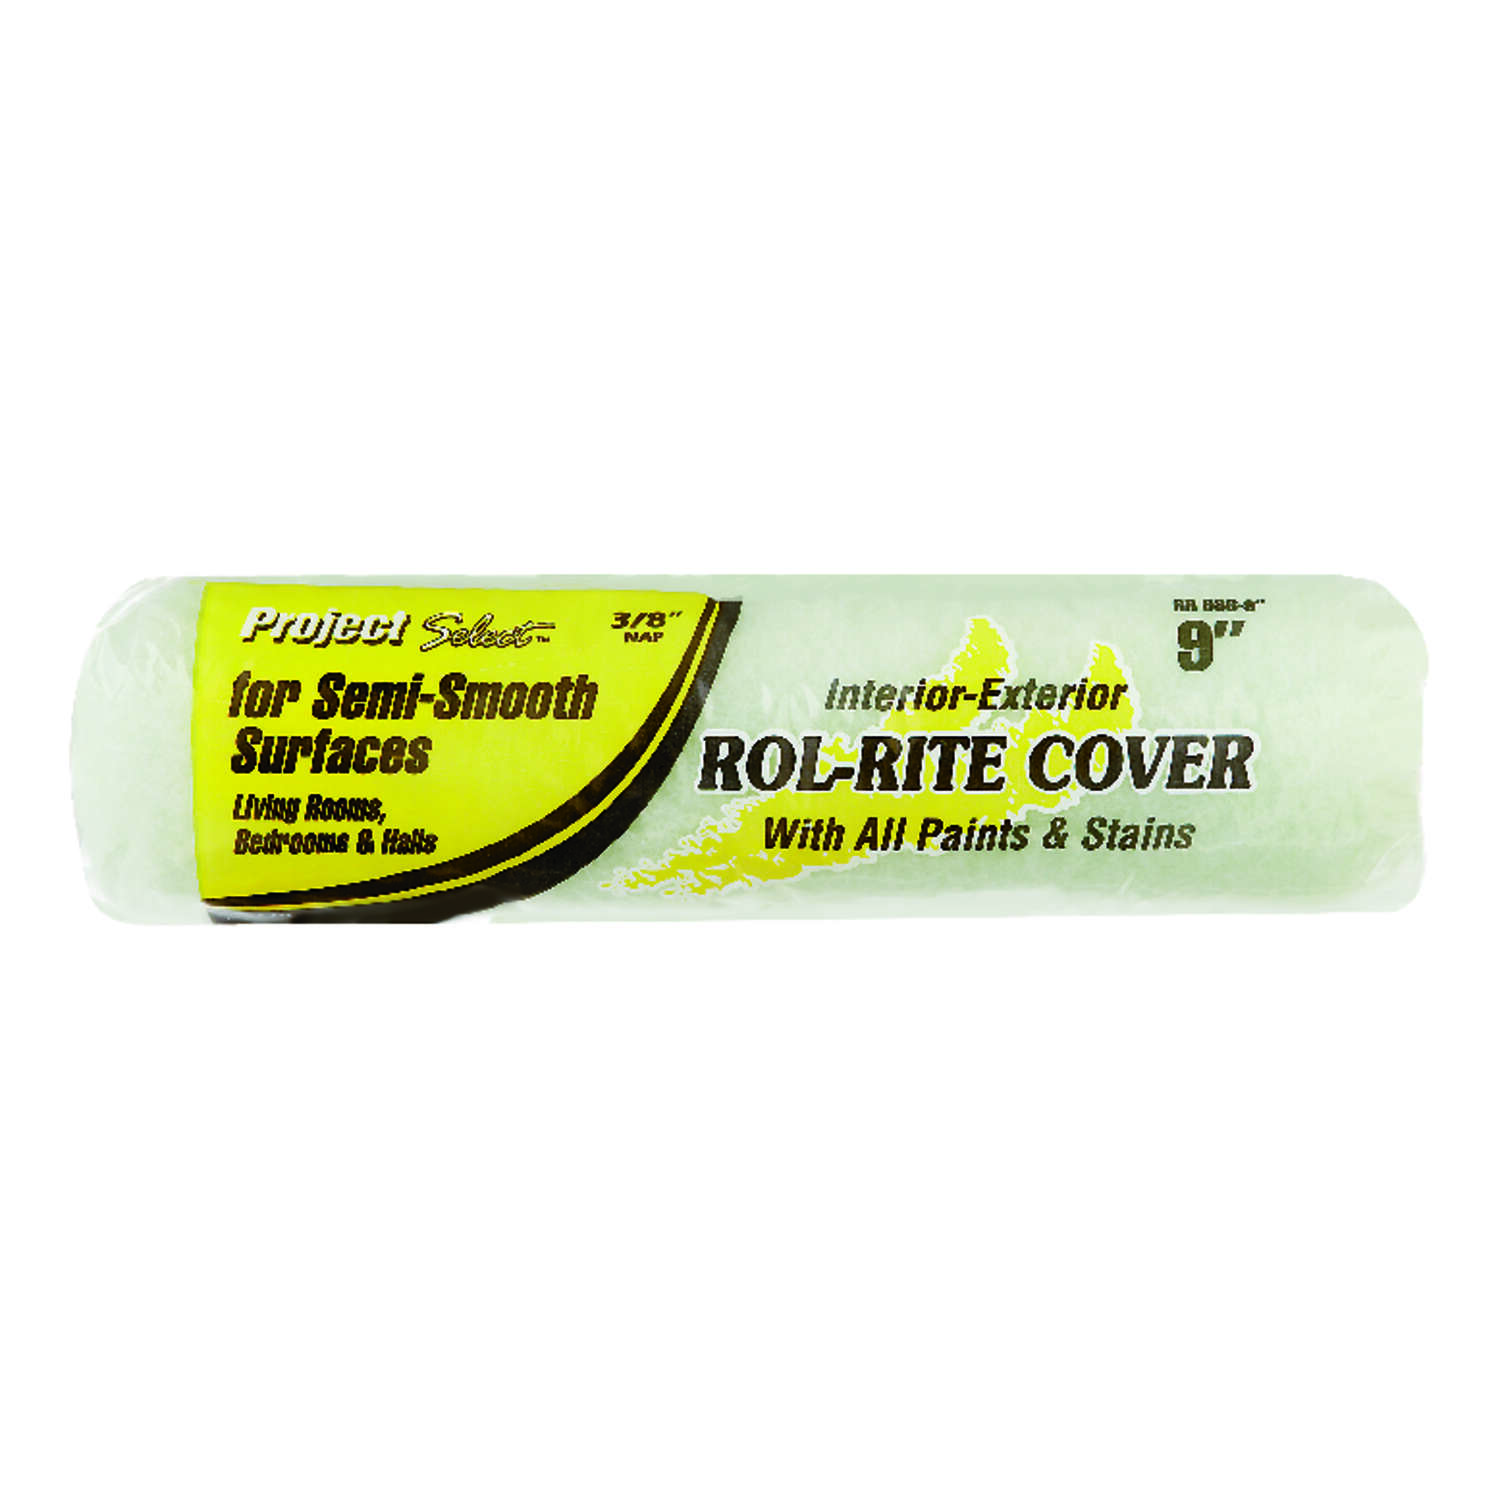 Project Select Rol-Rite Polyester 9 in. W x 3/8 in. Regular Paint Roller Cover 1 pk